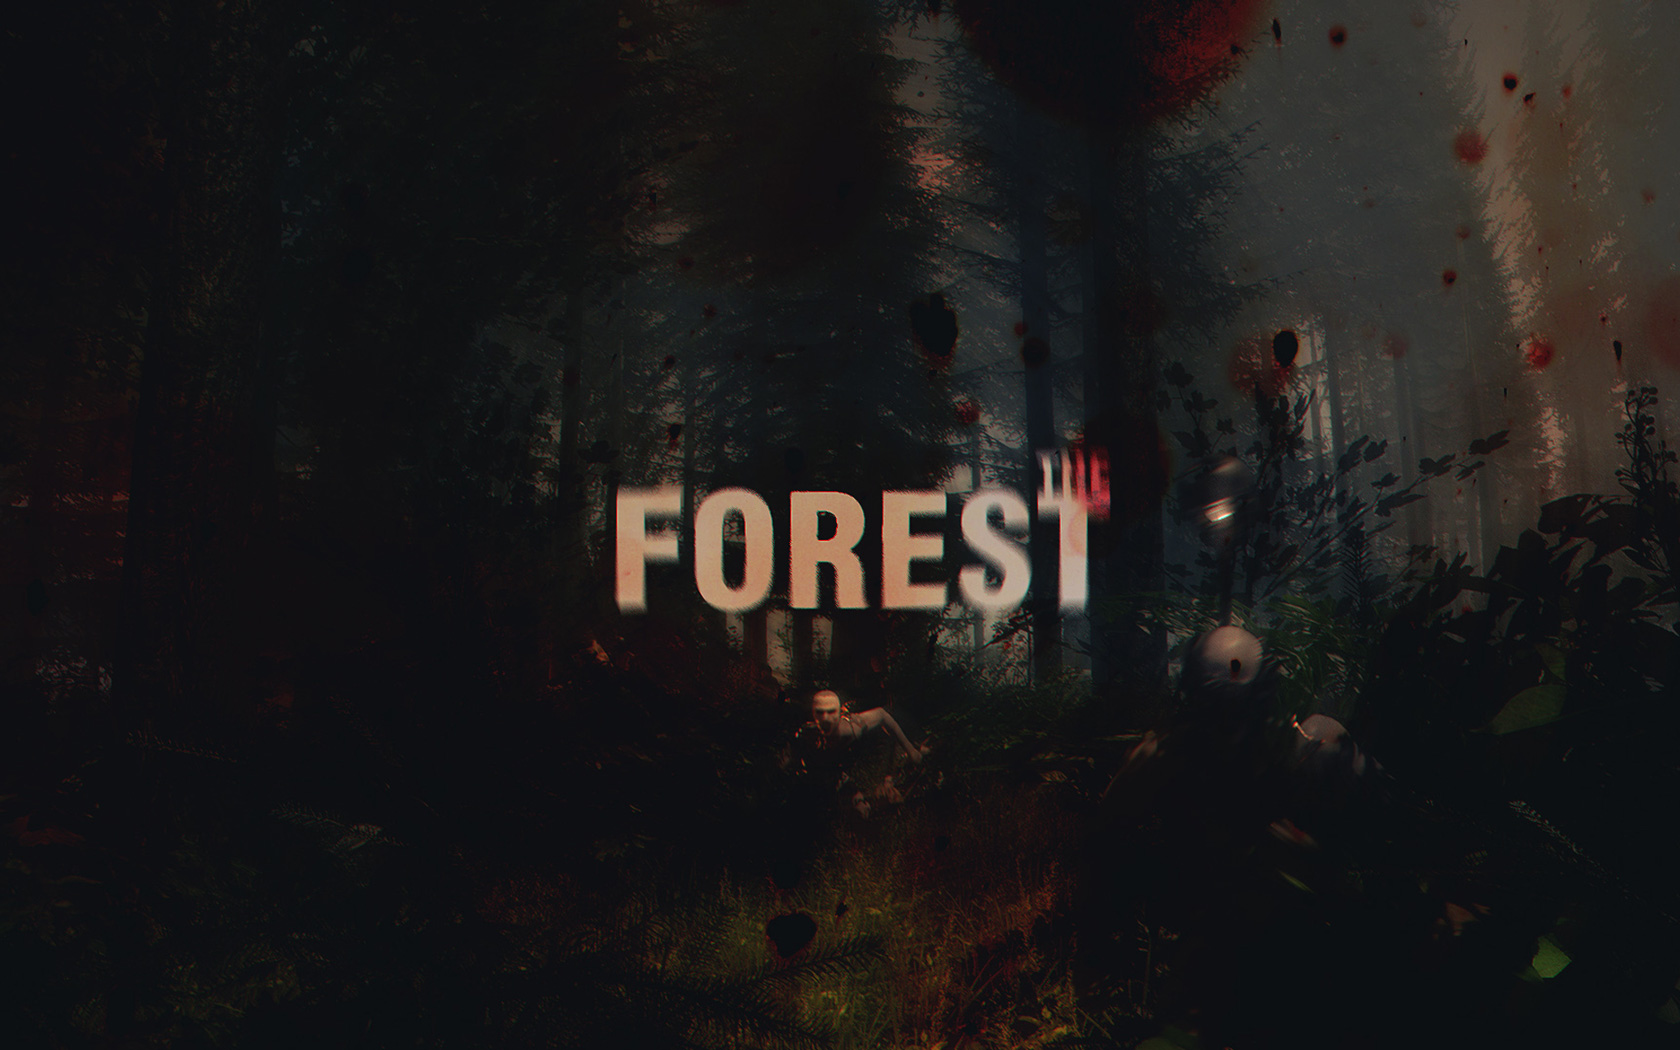 Free The Forest Wallpaper in 1680x1050